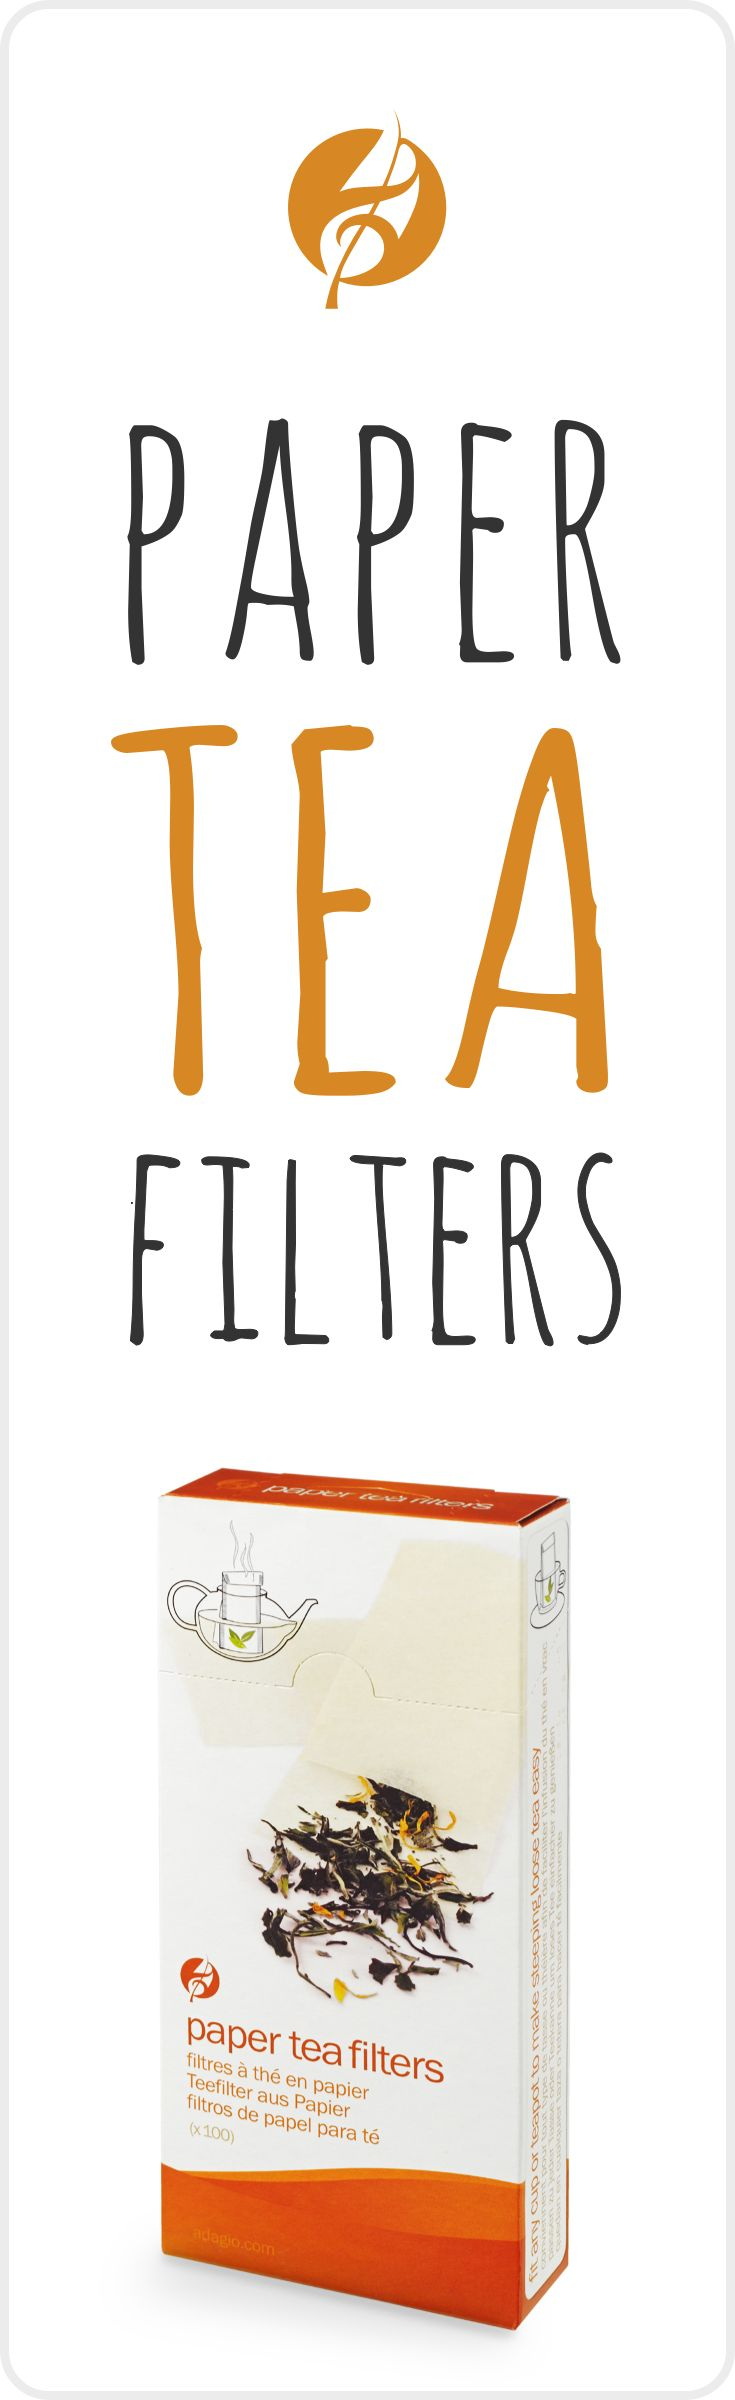 Enjoy loose tea anywhere with these convenient and easy-to-use disposable filters (empty tea bags).